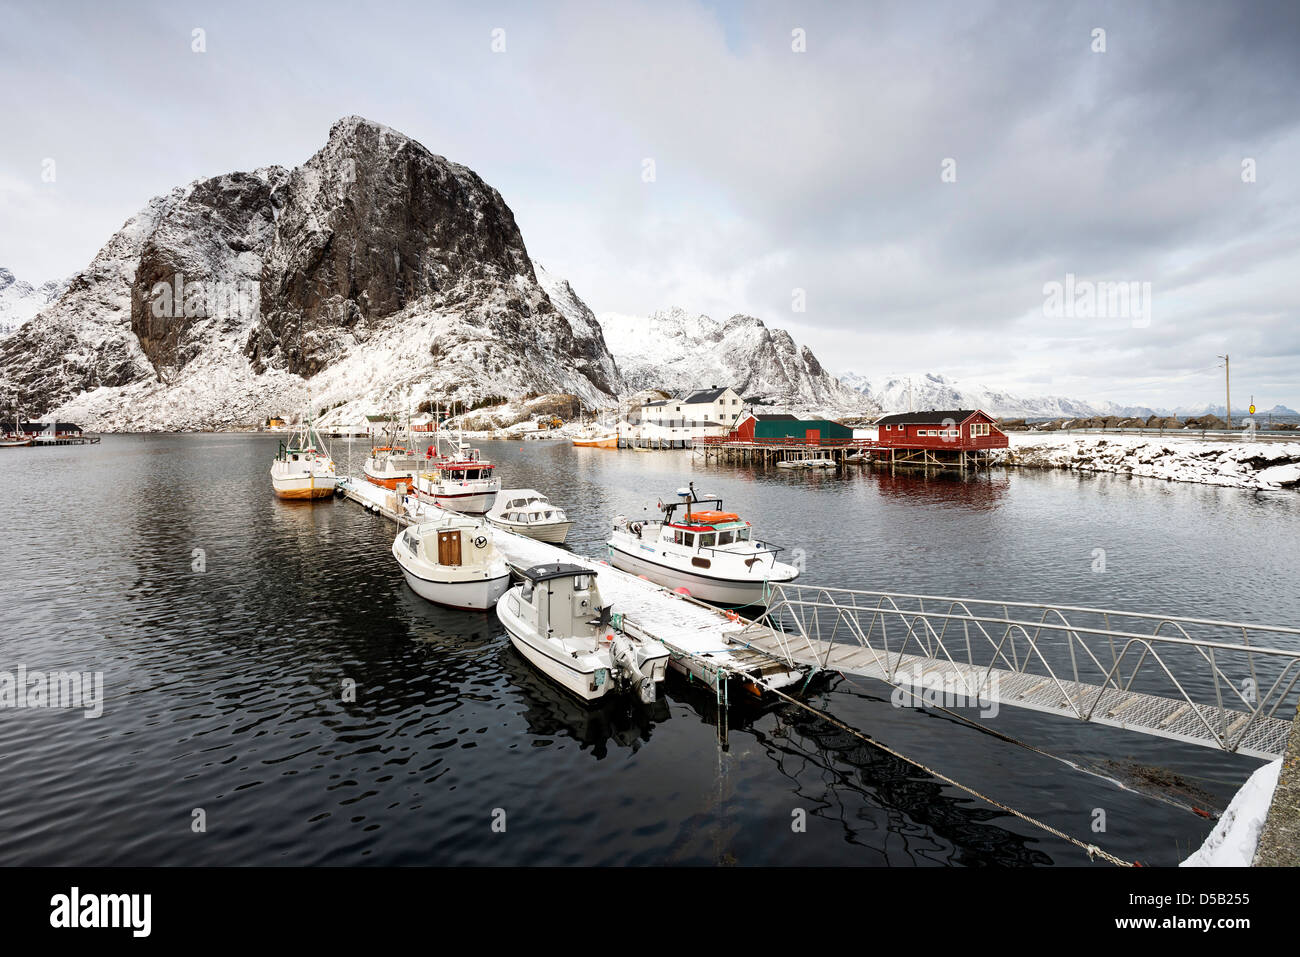 A view of boats tied up in the pretty harbour at Hamnoy, with Lilandstinden in the background - Stock Image